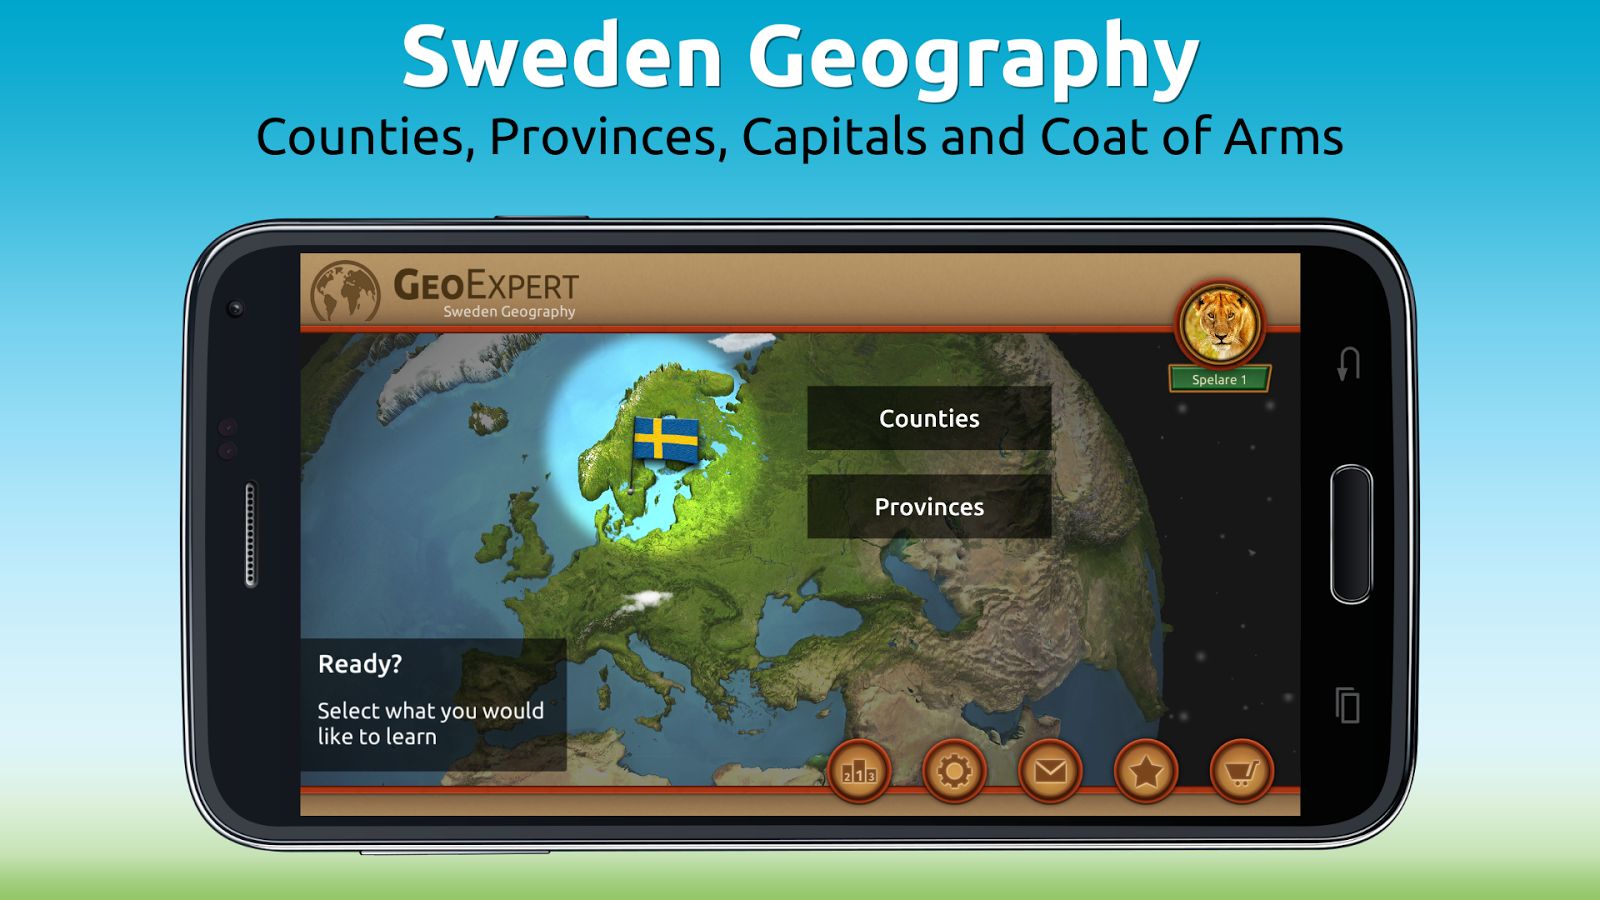 GeoExpert - Sweden Geography Screenshot